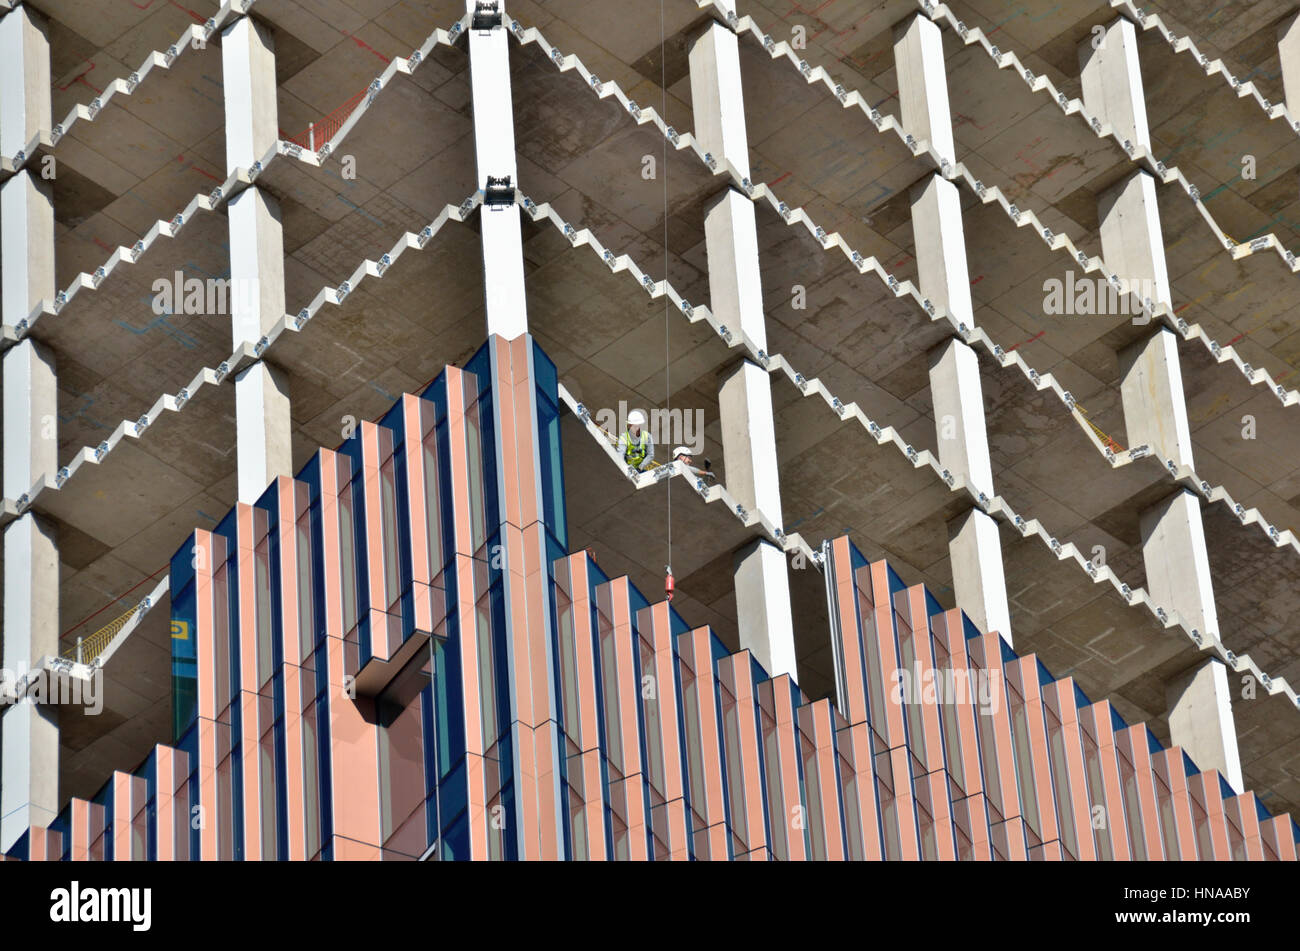 Close up of an office building under construction showing core and cladding. - Stock Image